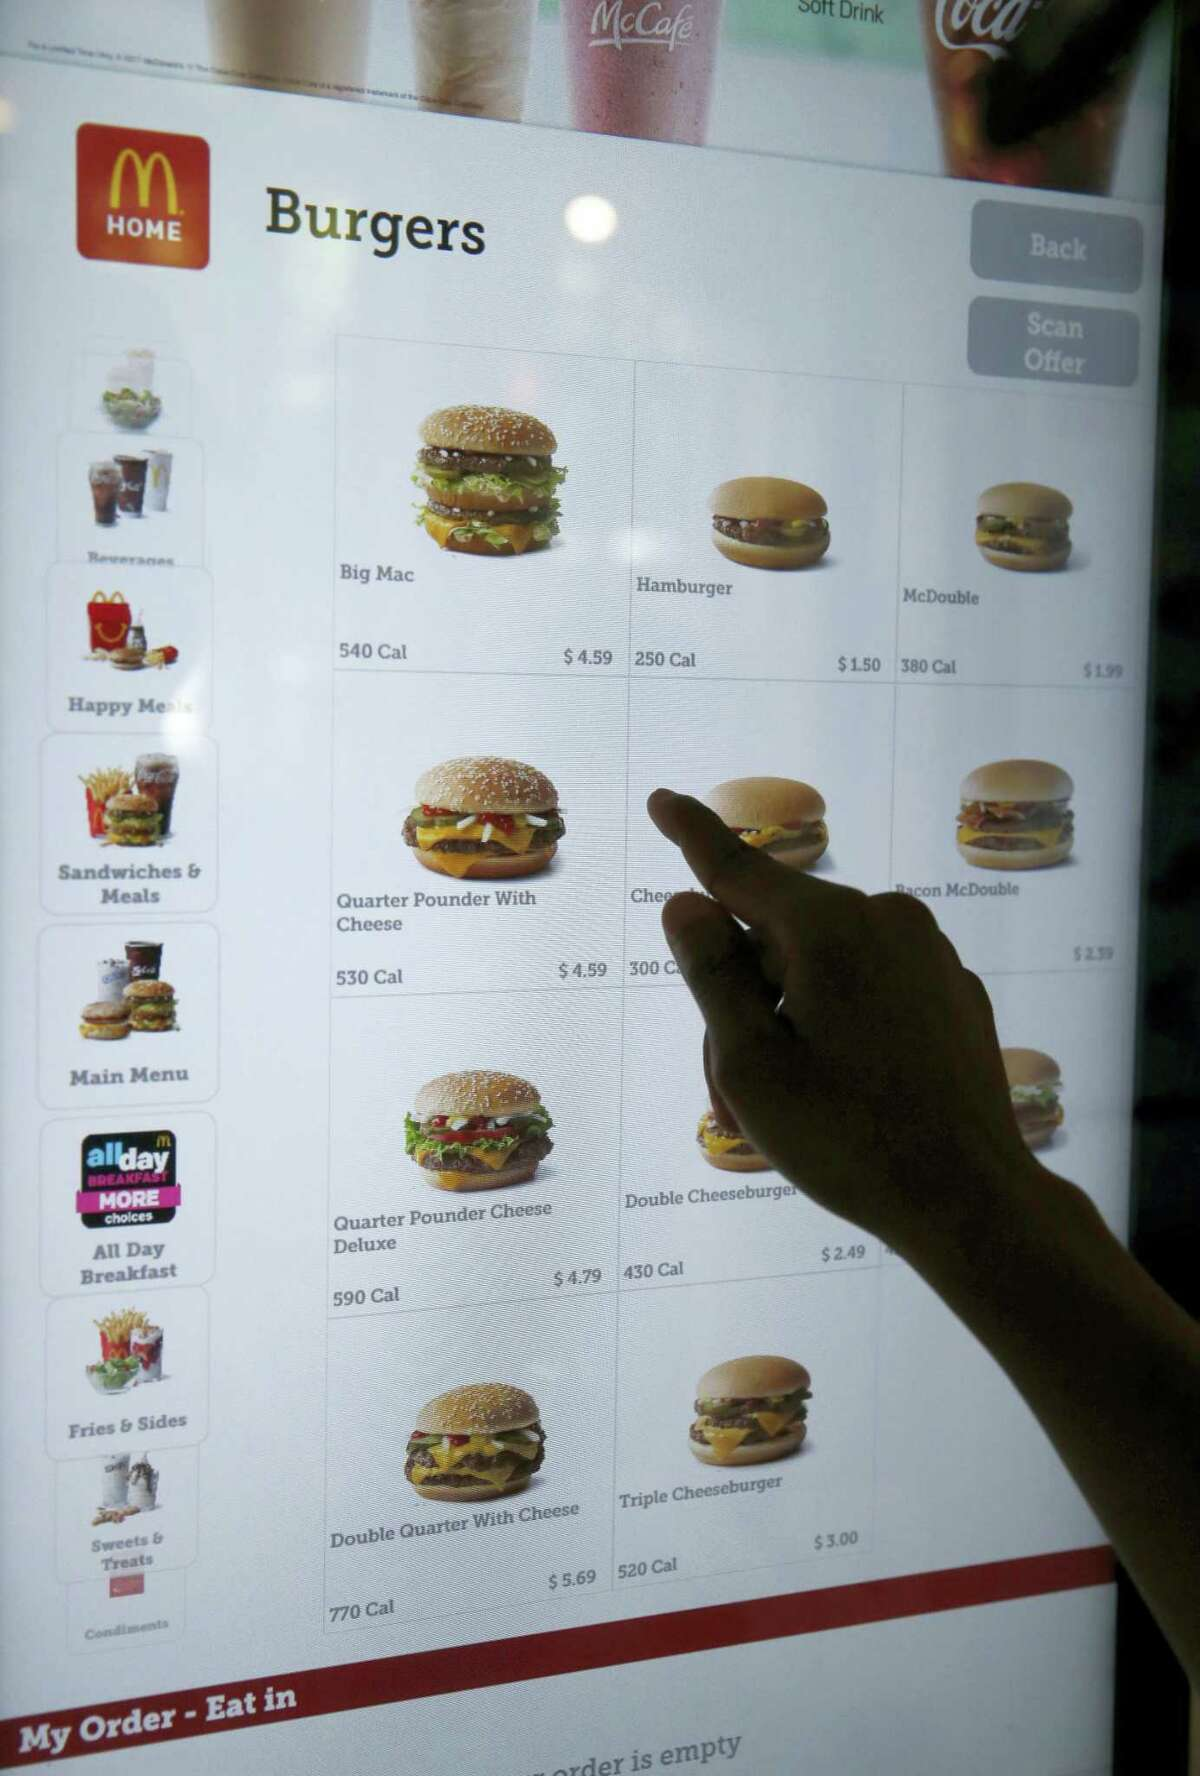 In this Thursday photo, a customer orders food at a self-service kiosk at a McDonald's restaurant in Chicago. The company that helped define fast food is making supersized efforts to reverse its fading popularity and catch up to a landscape that has evolved around it. That includes expanding delivery, digital ordering kiosks in restaurants, and rolling out an app that saves precious seconds.